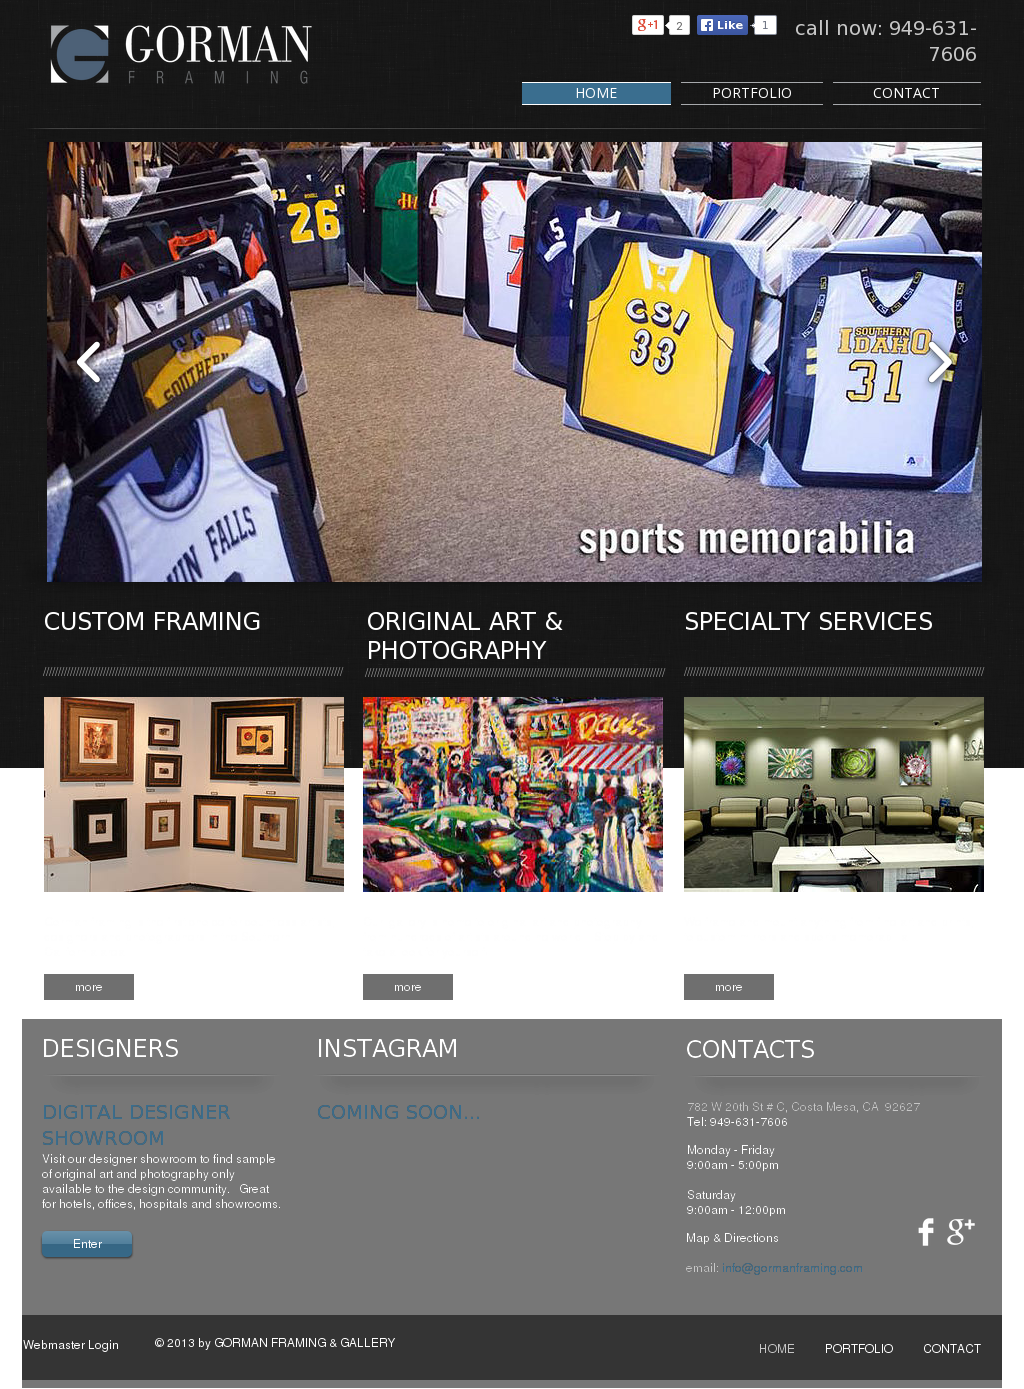 Gorman Framing Competitors, Revenue and Employees - Owler Company ...